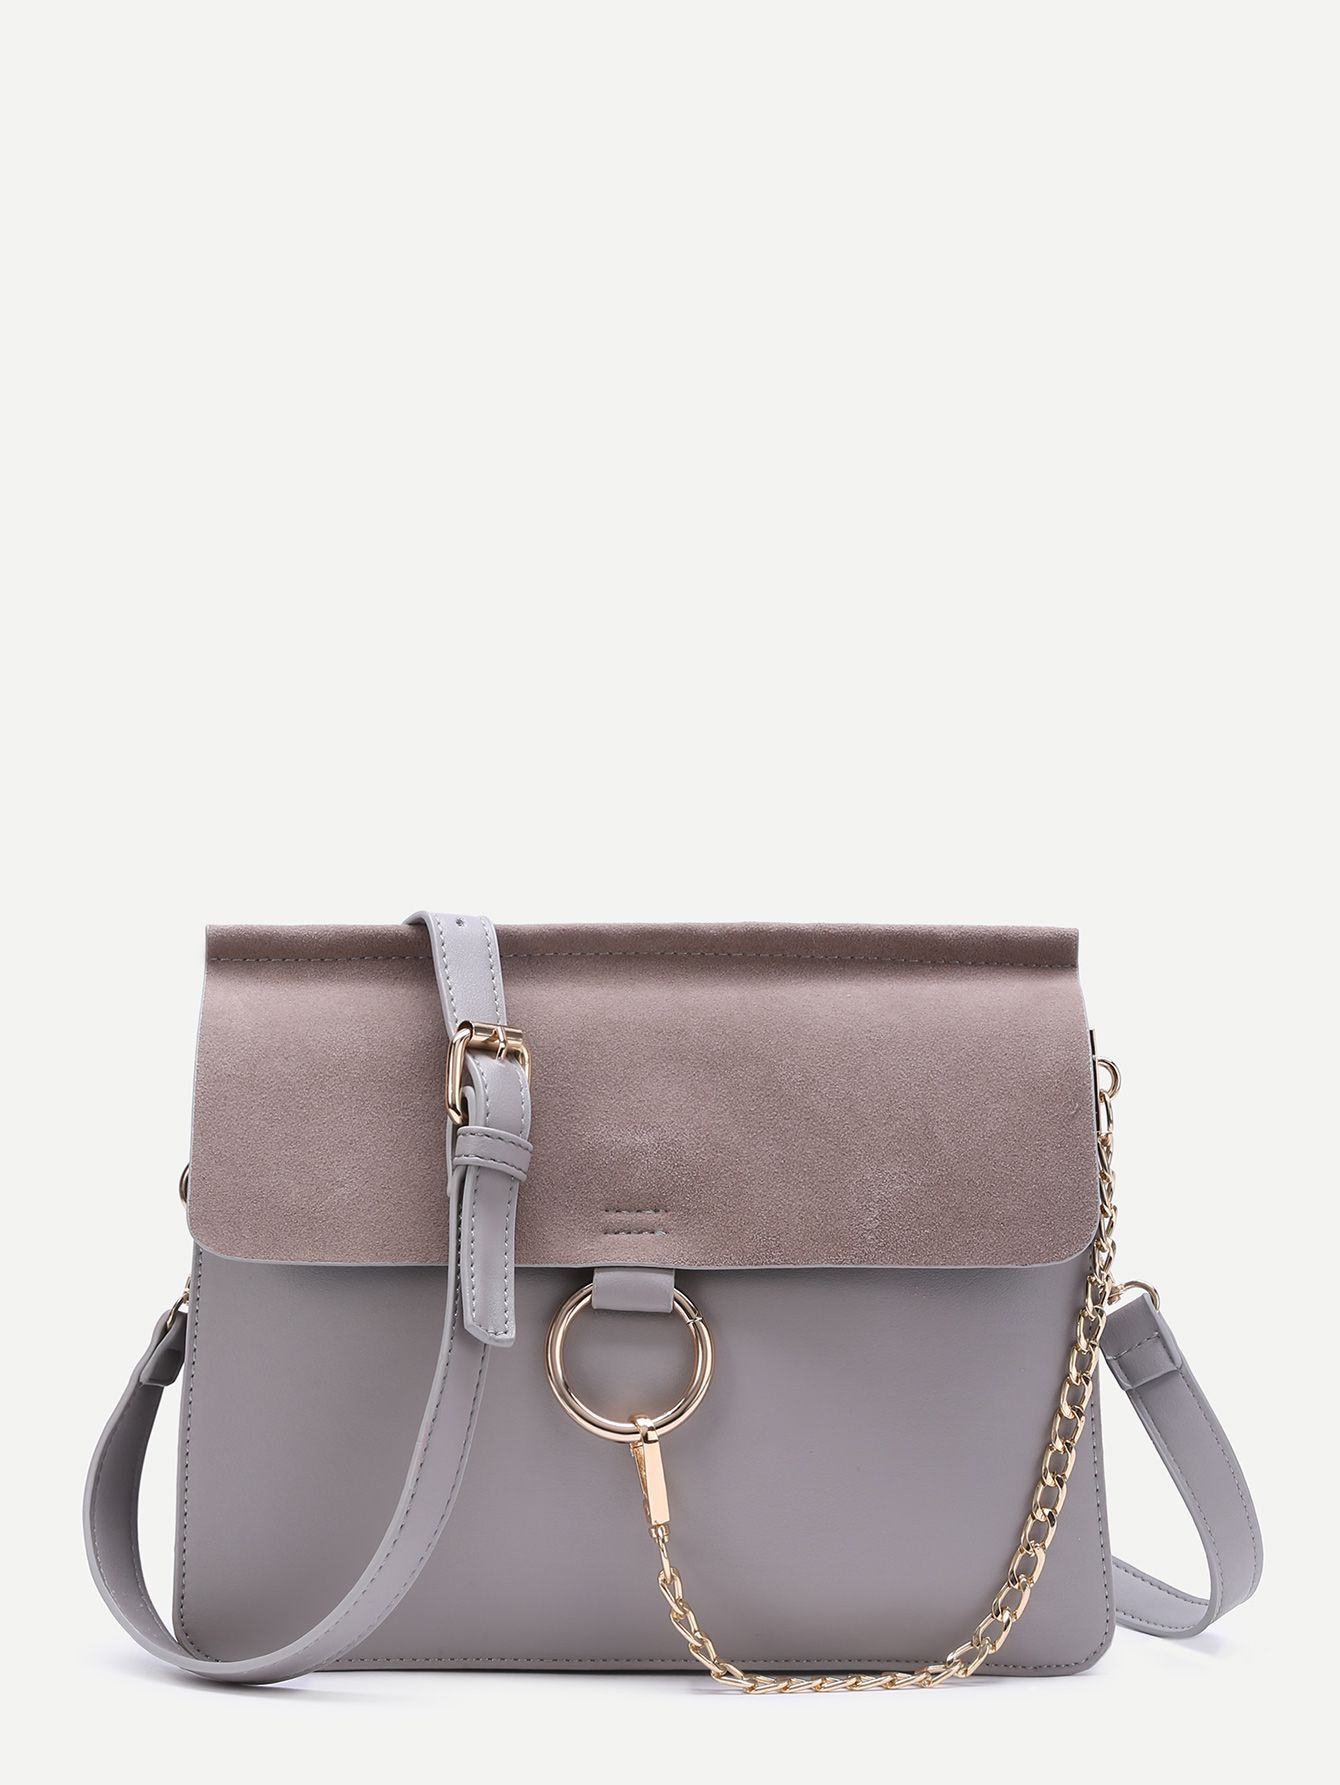 d6cca497d61f6 Shop Grey Ring Accent Faux Suede Flap Bag online. SheIn offers Grey Ring  Accent Faux Suede Flap Bag & more to fit your fashionable needs.